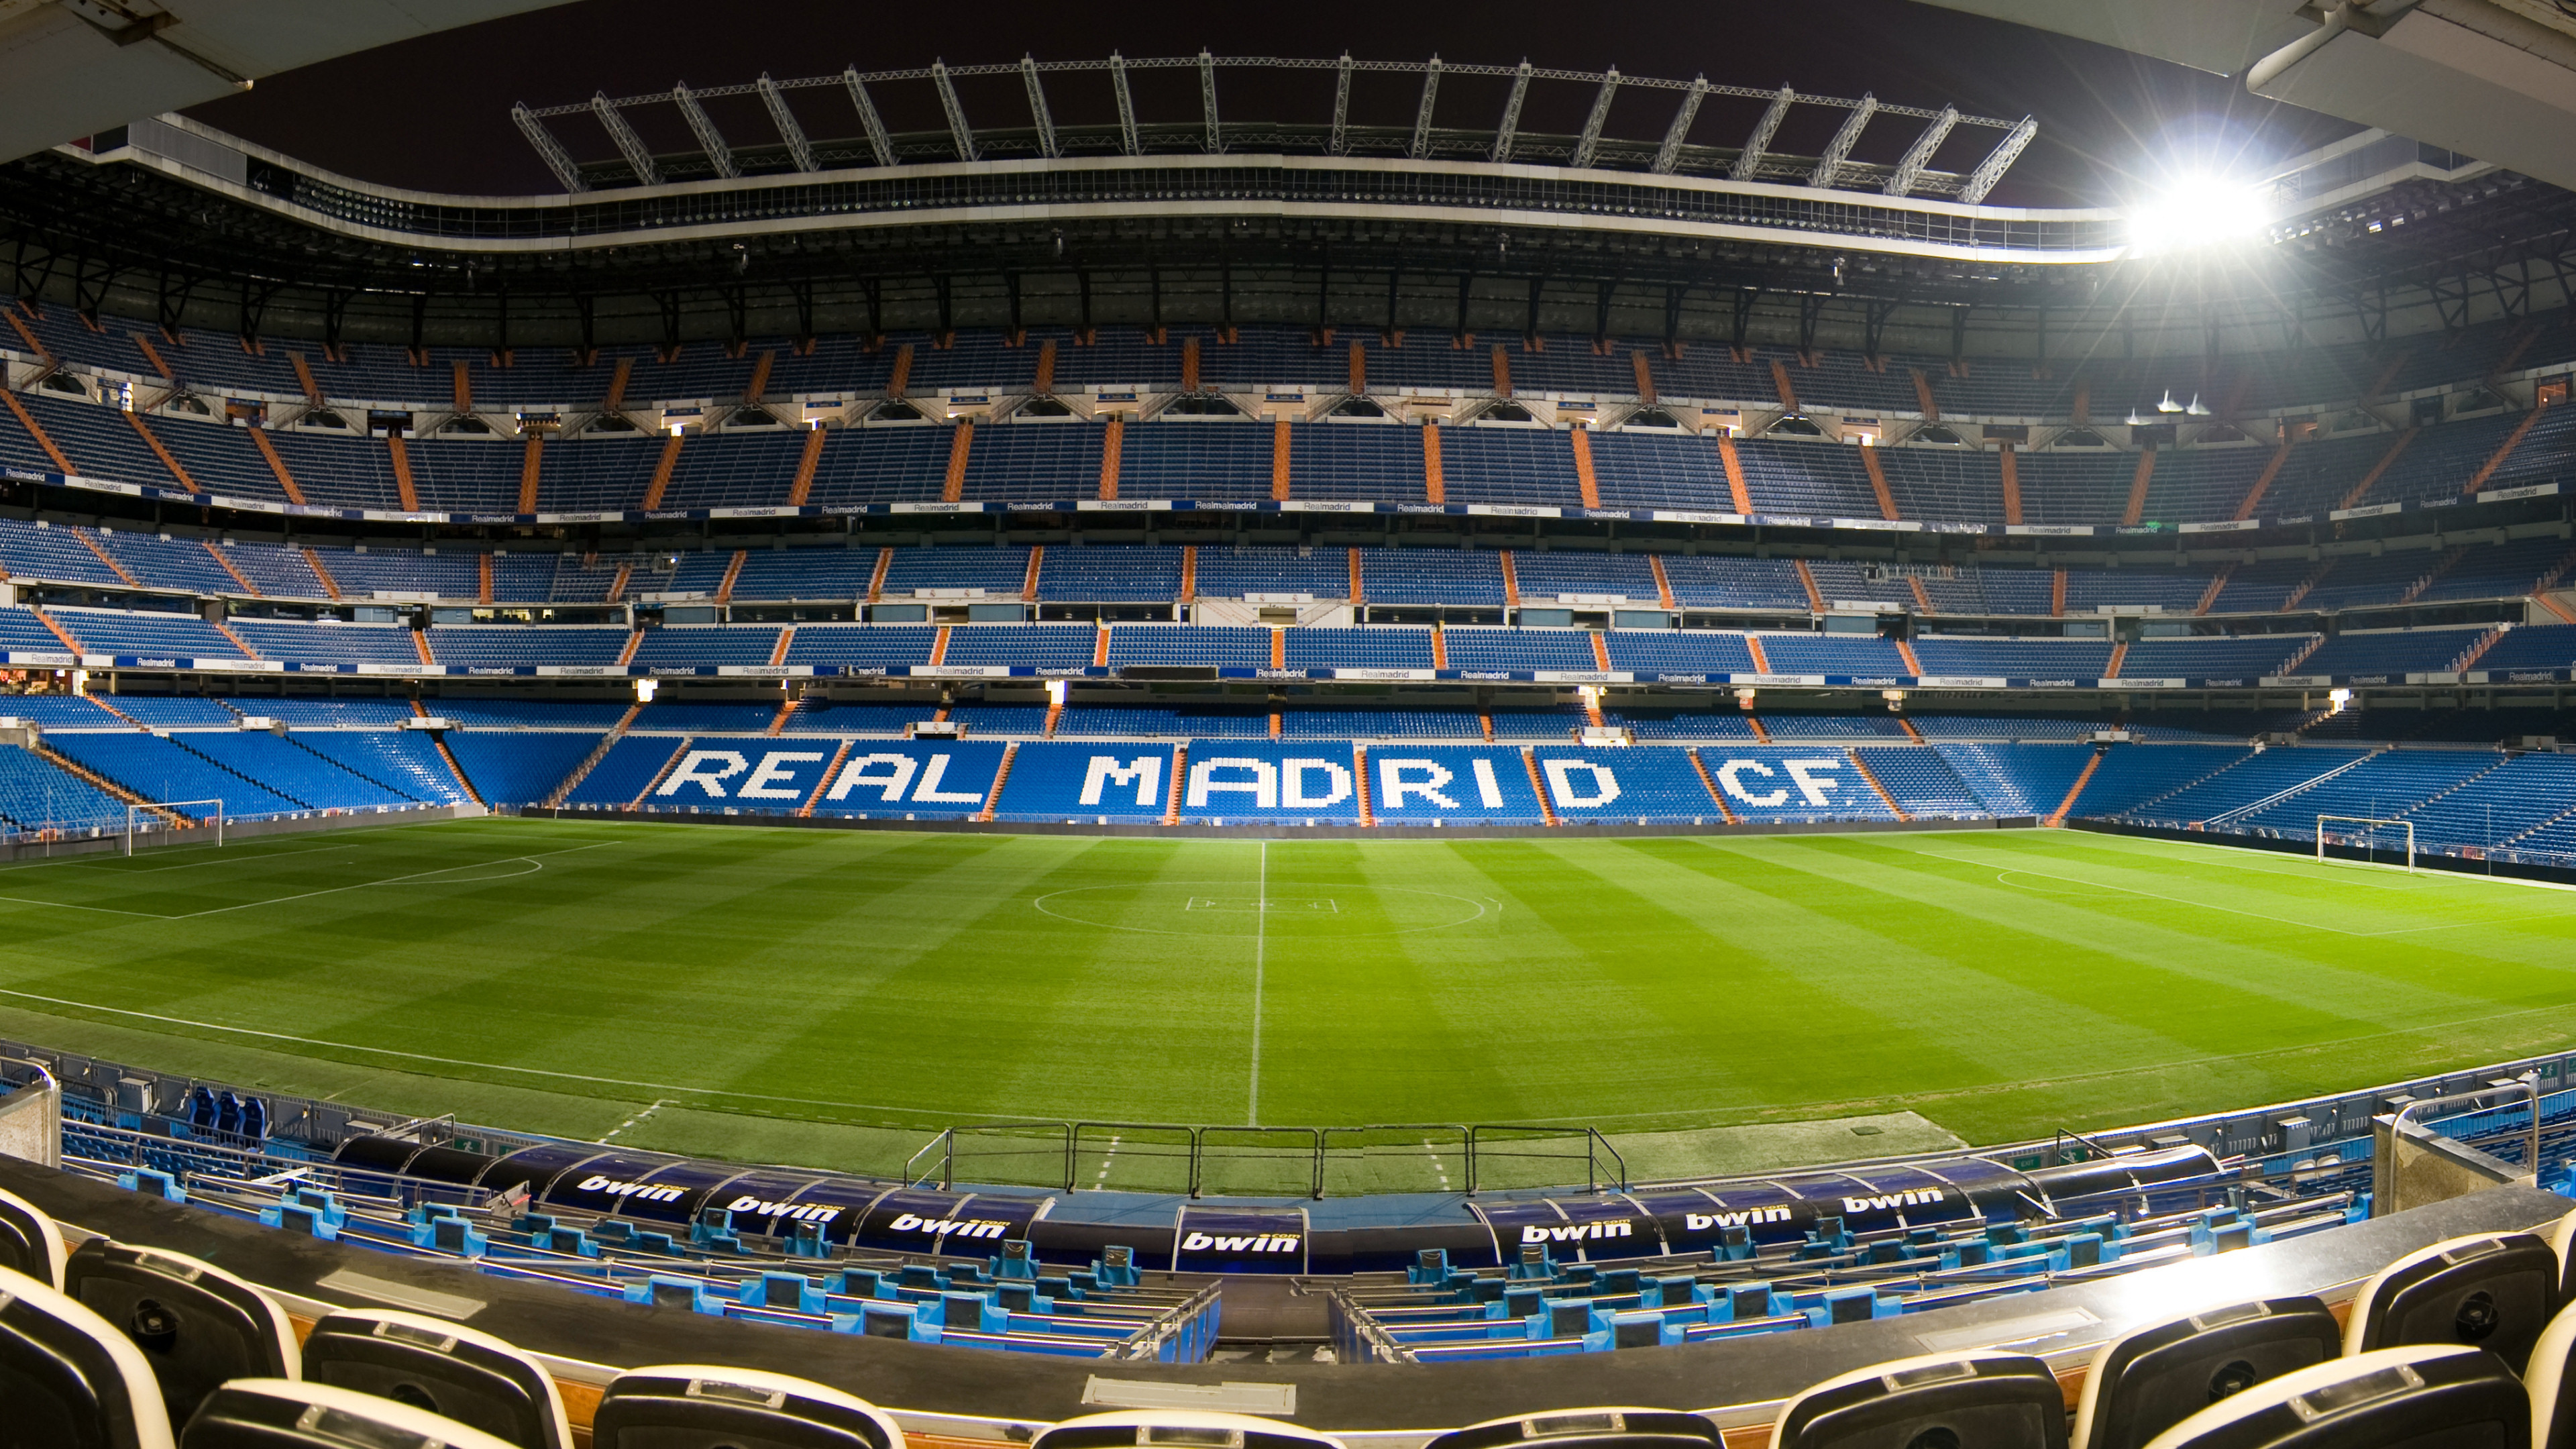 Res: 3840x2160, ... stadium-Real Madrid Wallpapers ...